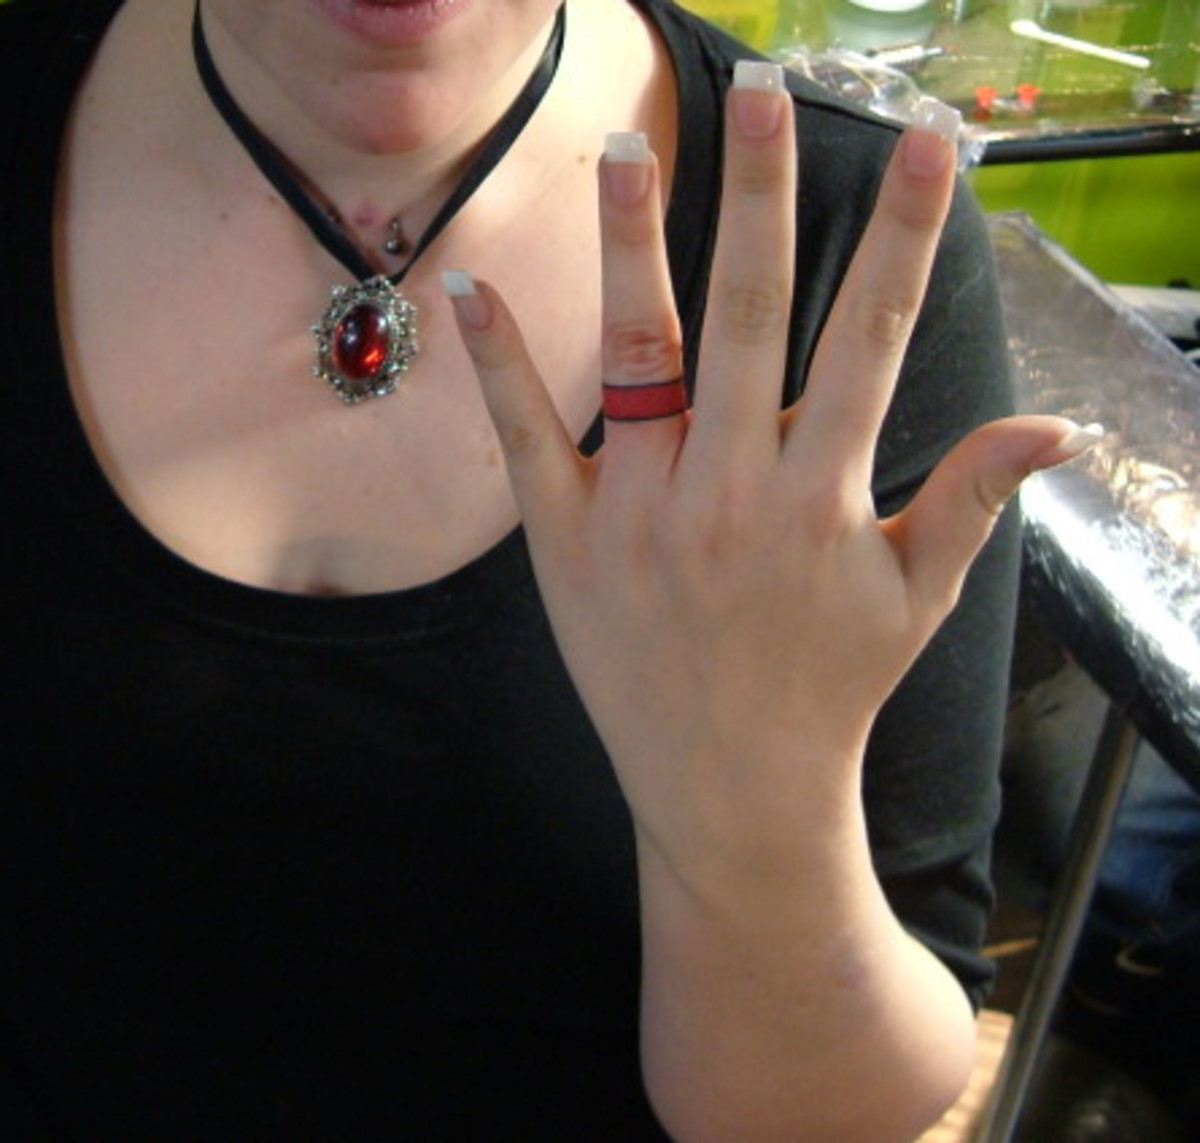 Modern Red Band Wedding Ring Tattoo [http://community.livejournal.com/perthgoths/701054.html]